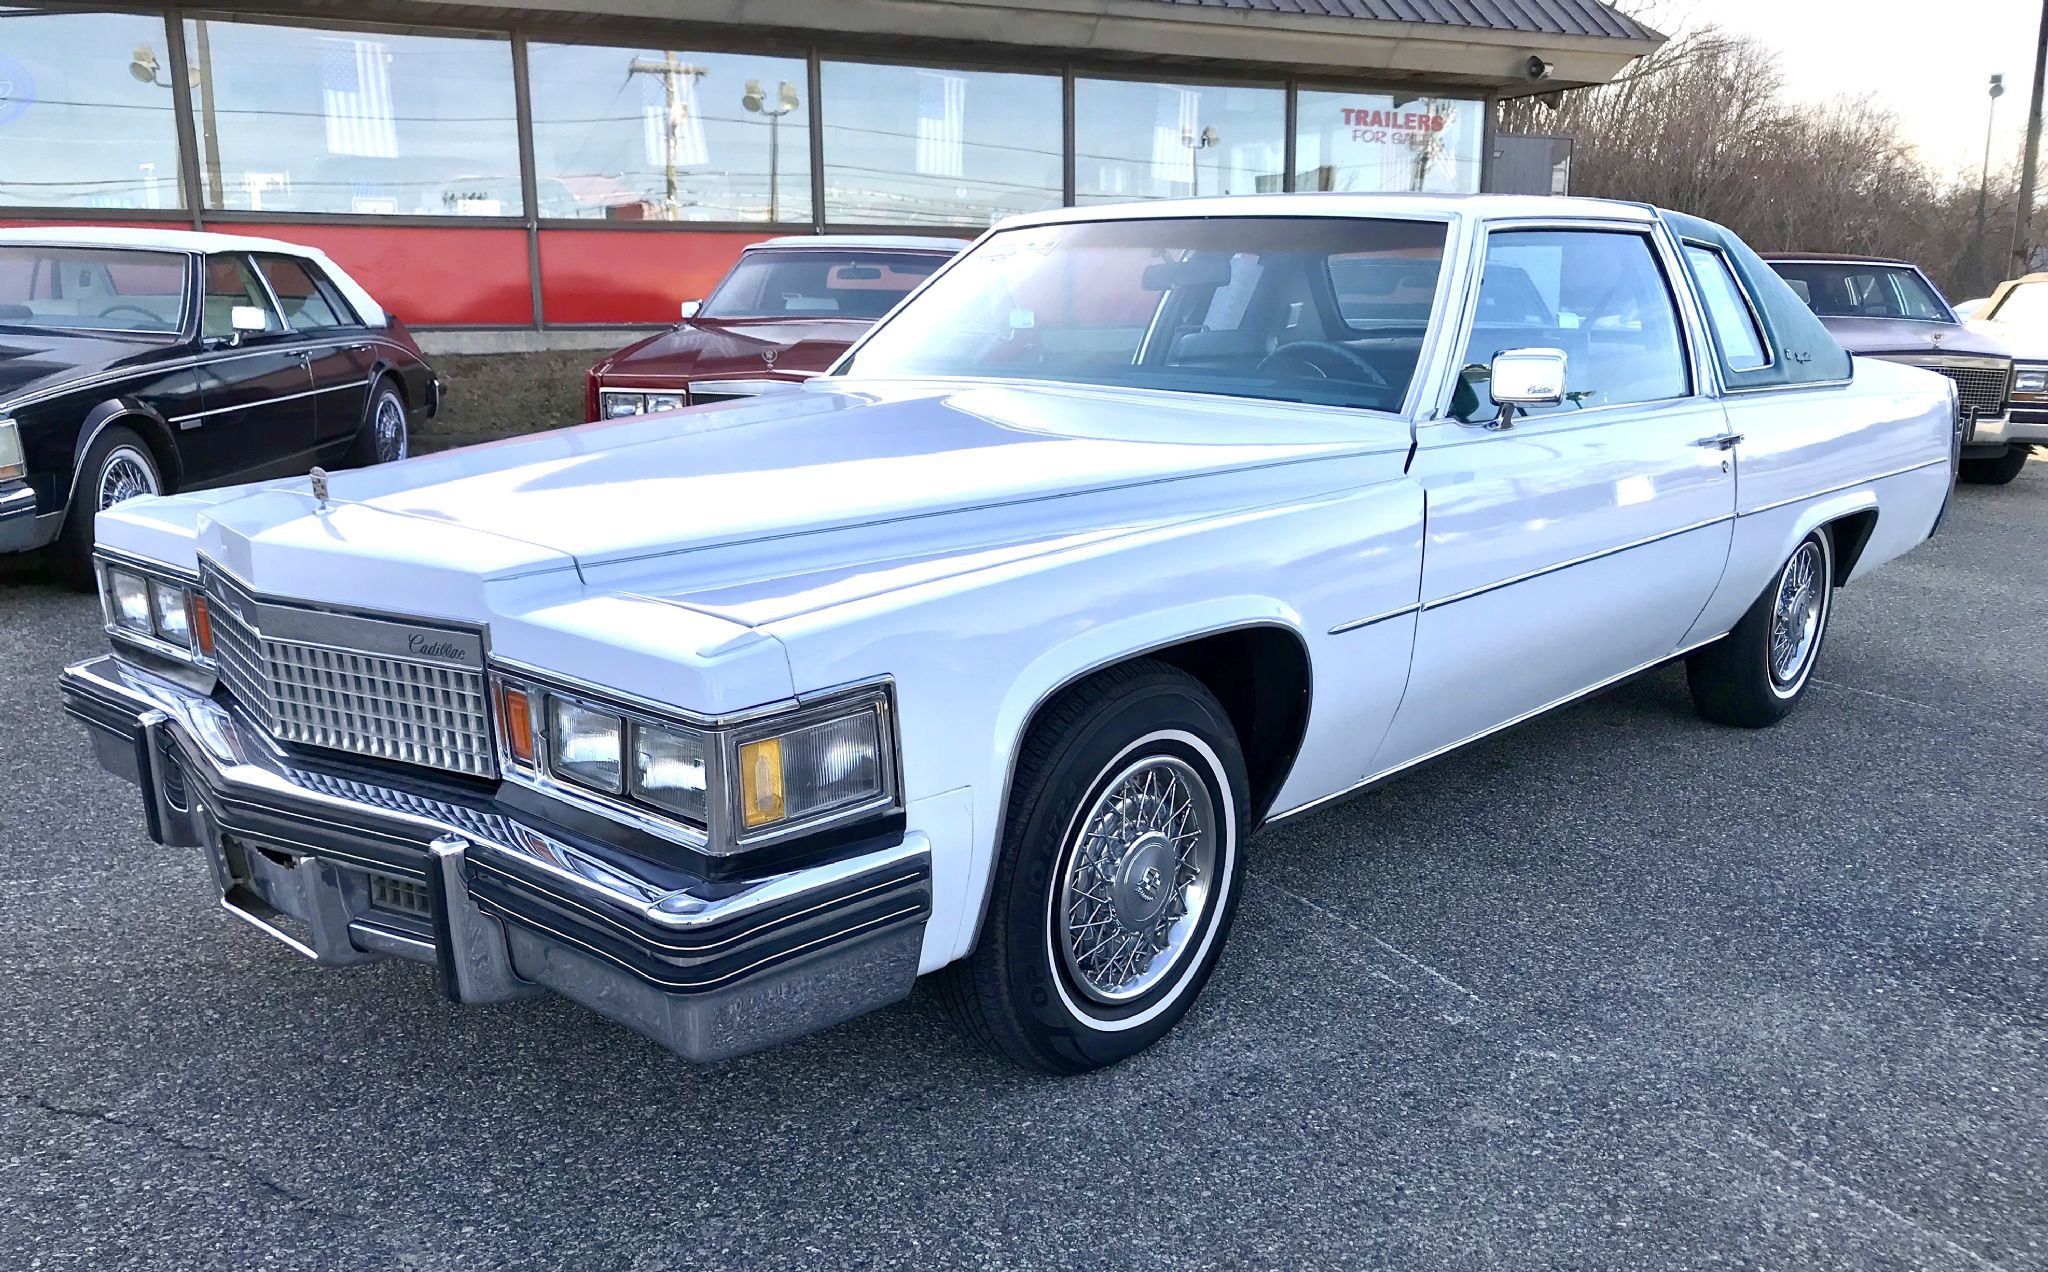 1979 Cadillac Coupe Deville Half Top For Sale | AutaBuy.com